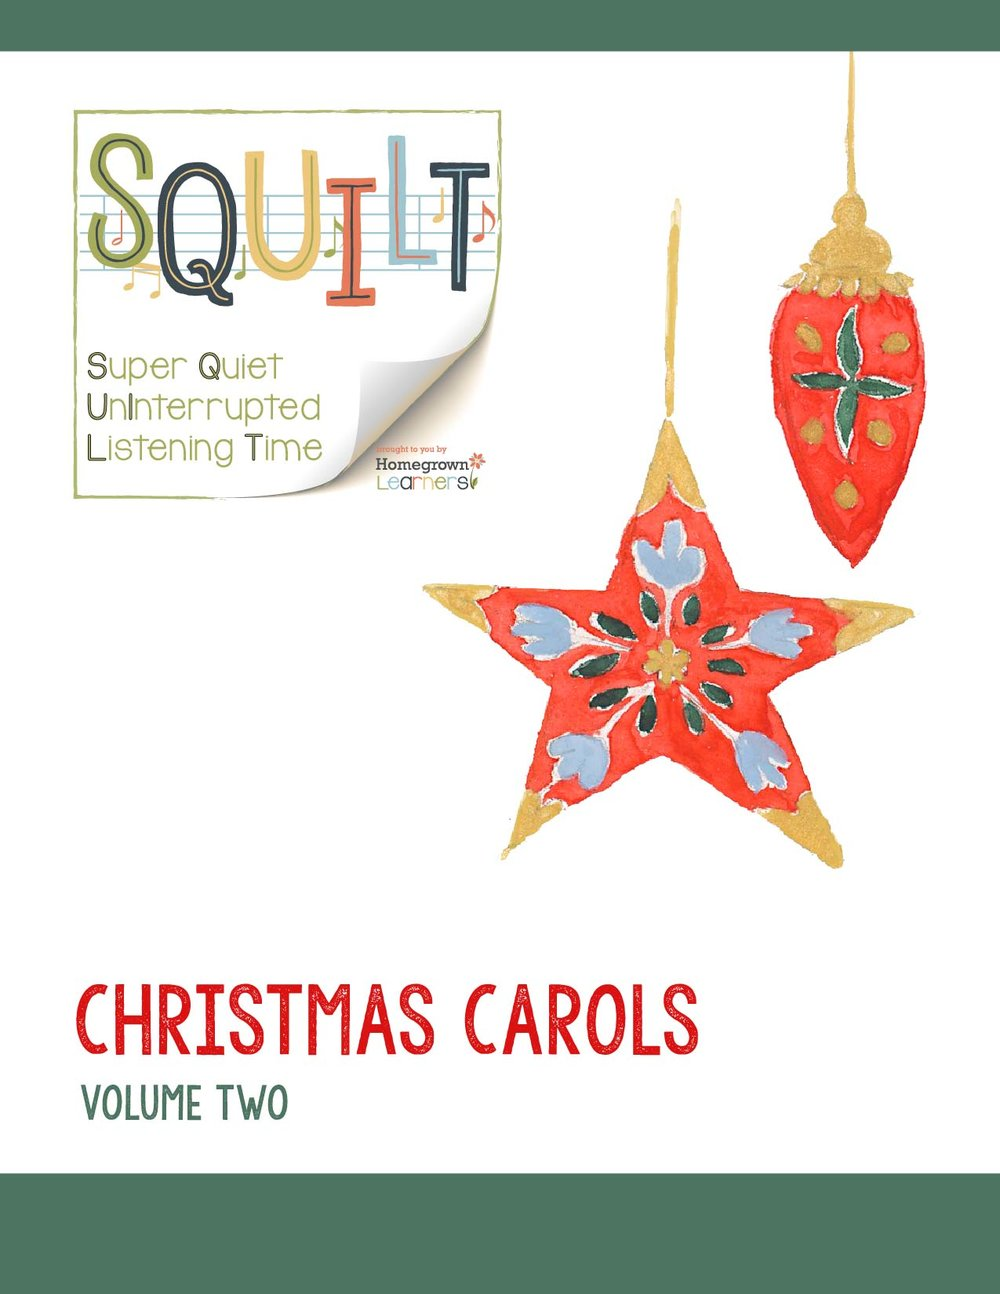 SQUILT_ChristmasCarols-2_cover-01.jpg